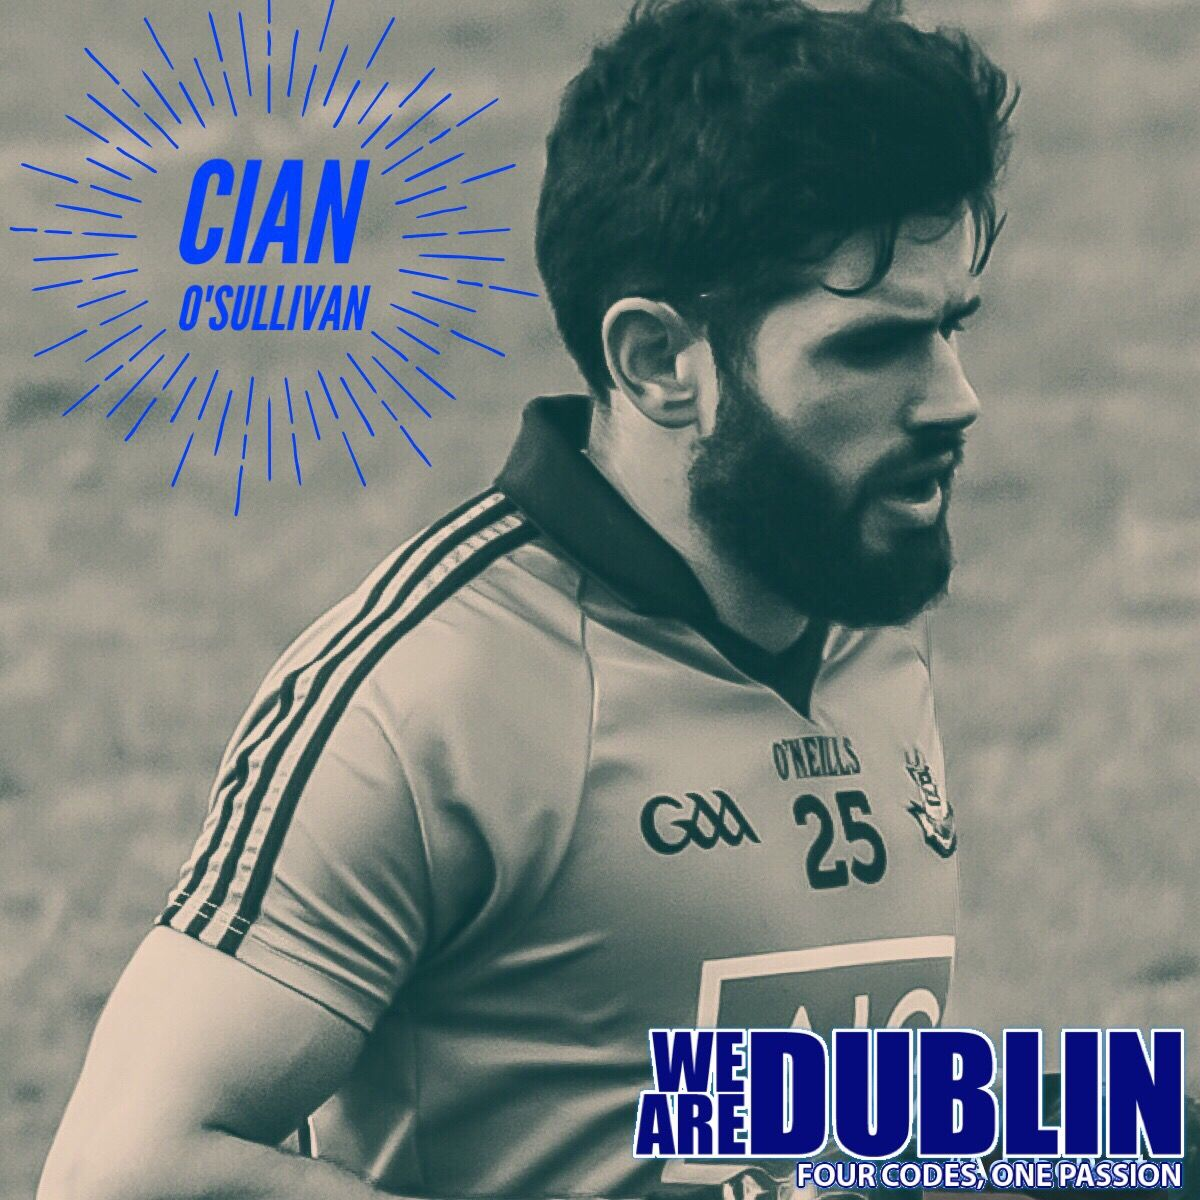 We Are Dublin DUBLIN NOT GETTING CARRIED AWAY, IT'S ONE GAME AT A TIME ACCORDING TO CIAN O'SULLIVAN - We Are Dublin